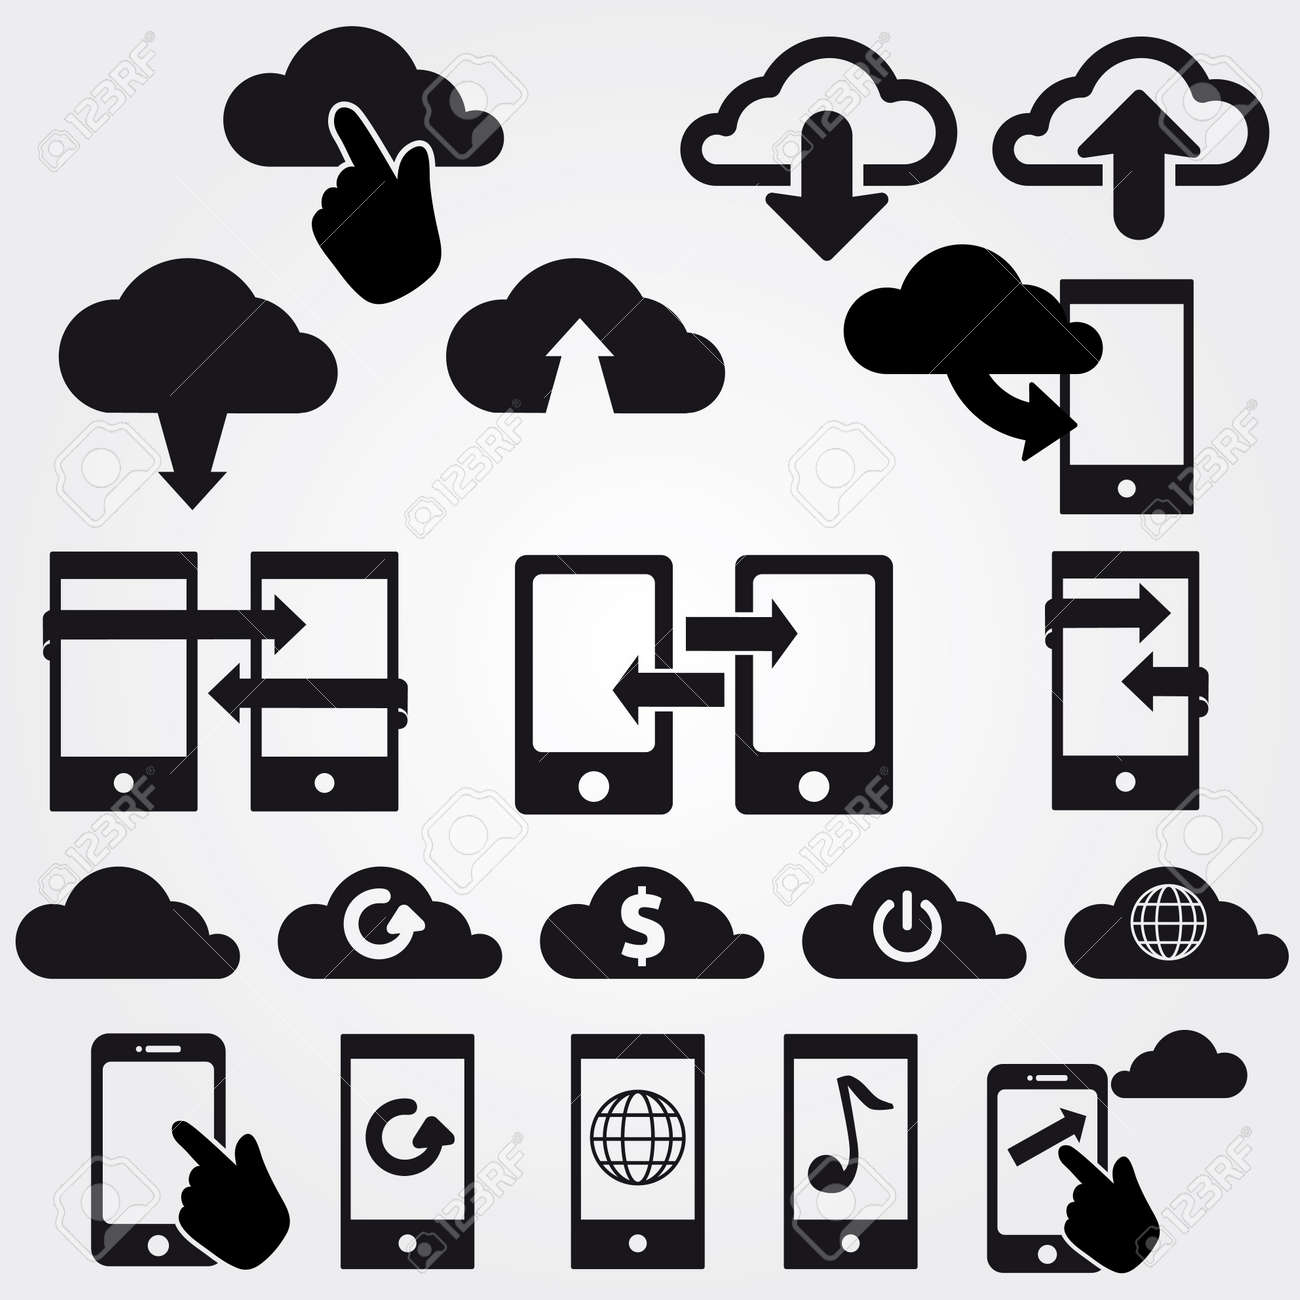 cloud app icon on mobile phone set icons vector Stock Vector - 19424971